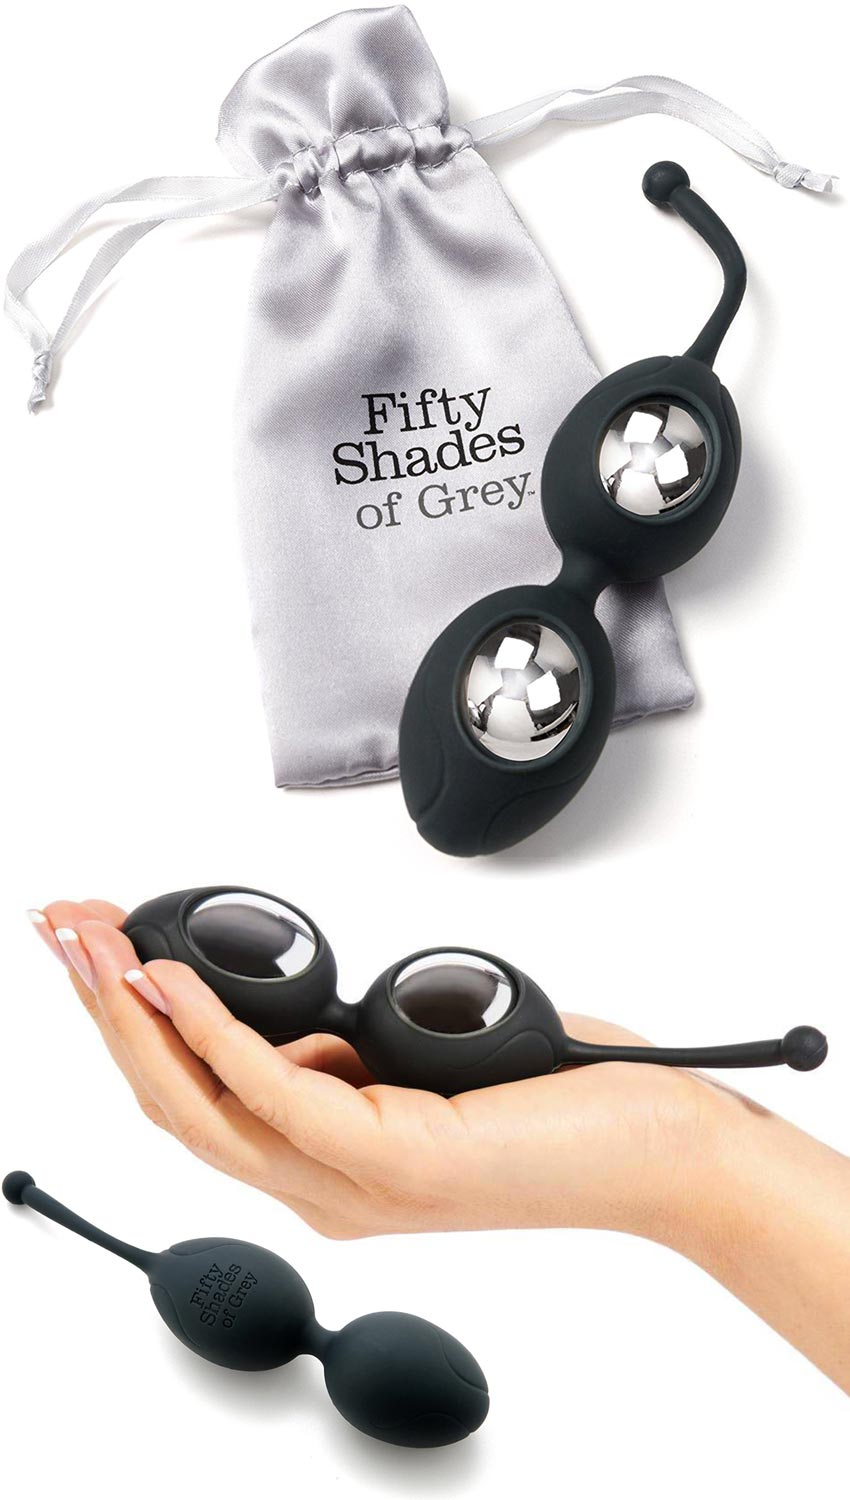 Fifty Shades of Grey - Delicious Pleasure Silicone Ben Wa Balls